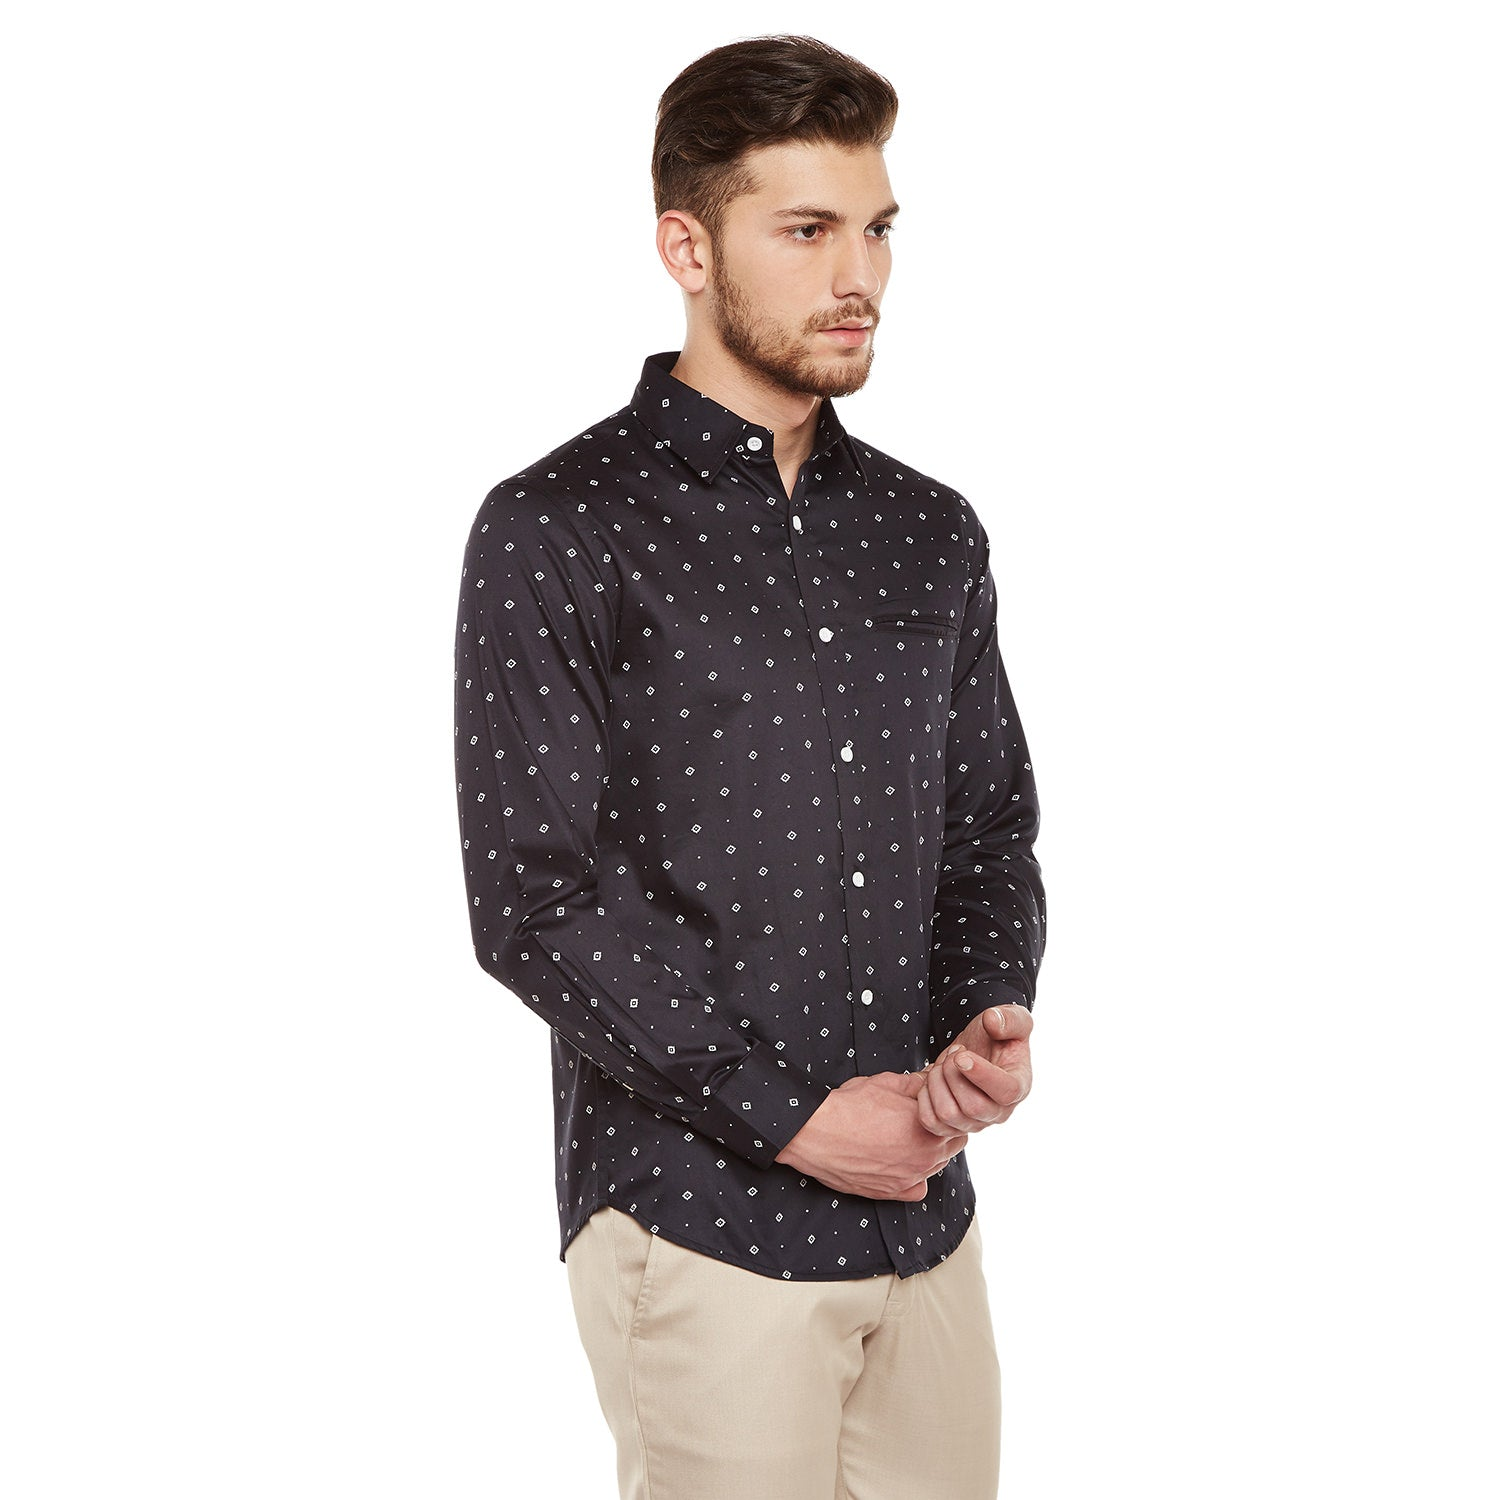 Atorse Mens Full Sleeves Raglan Shirt With Micro Prints